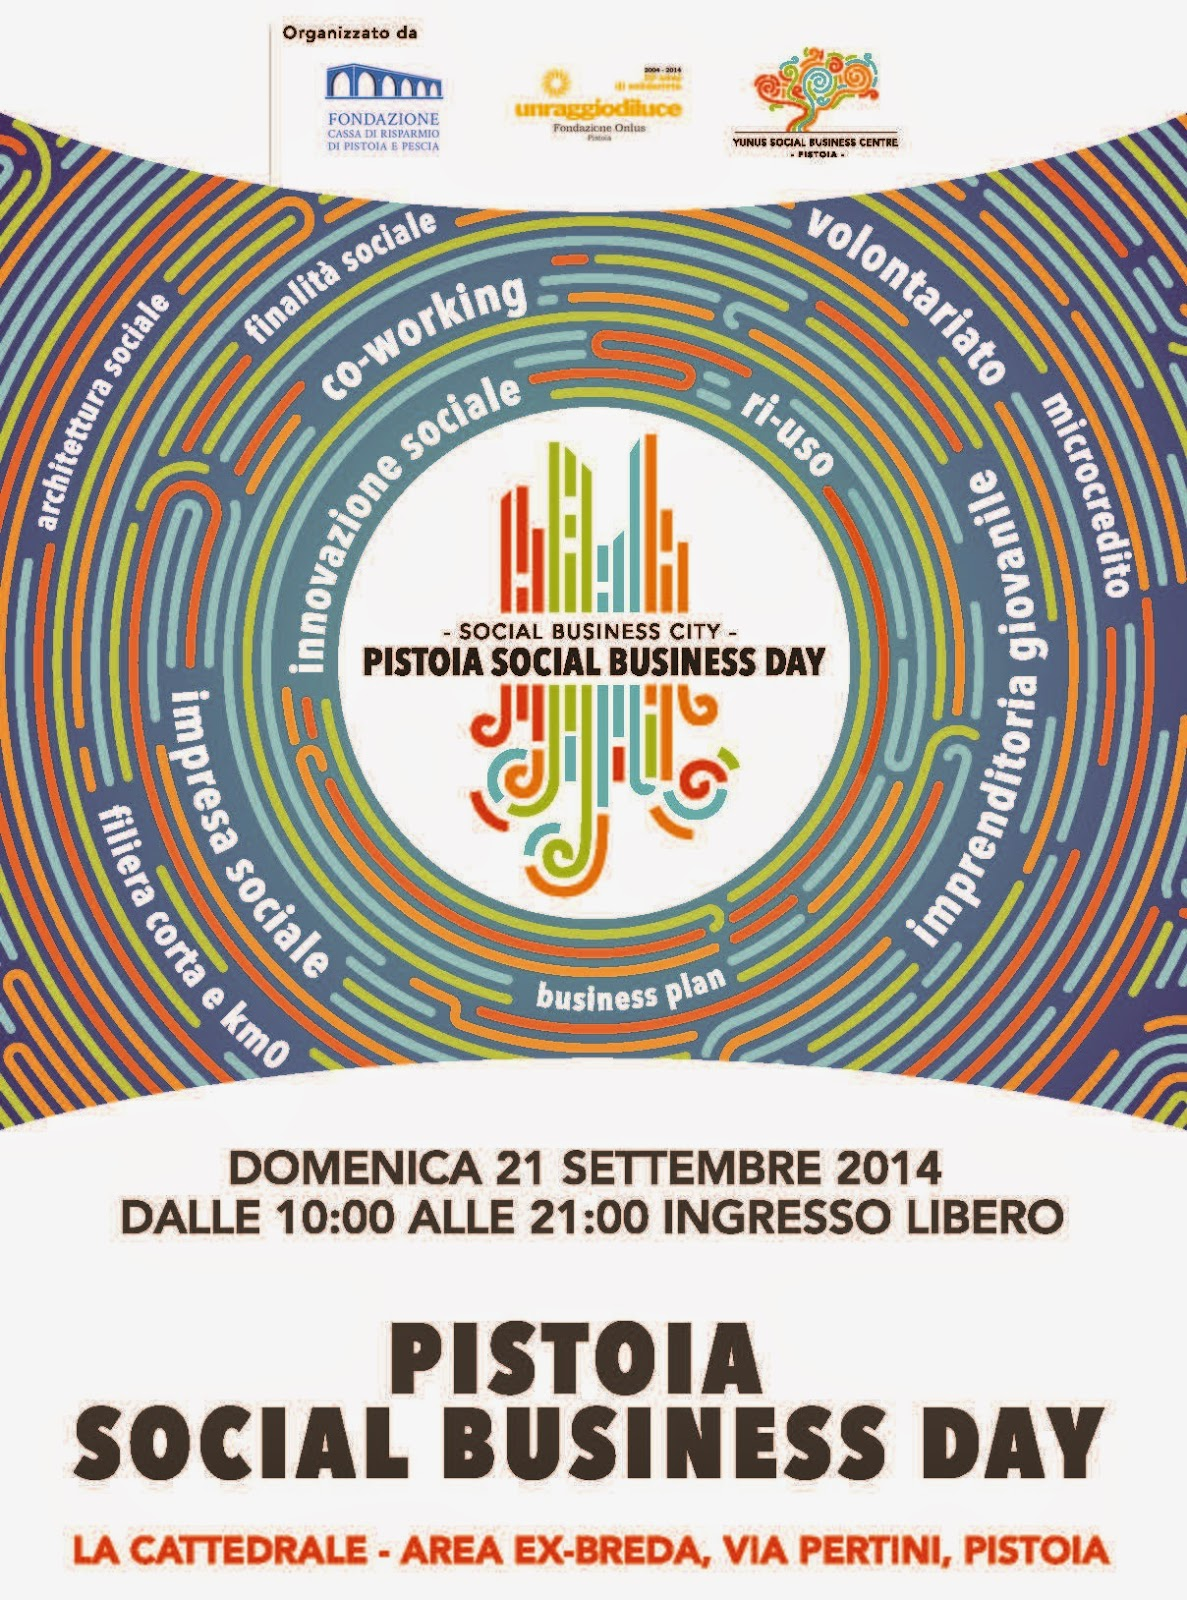 Social Business Day 2014 Pistoia